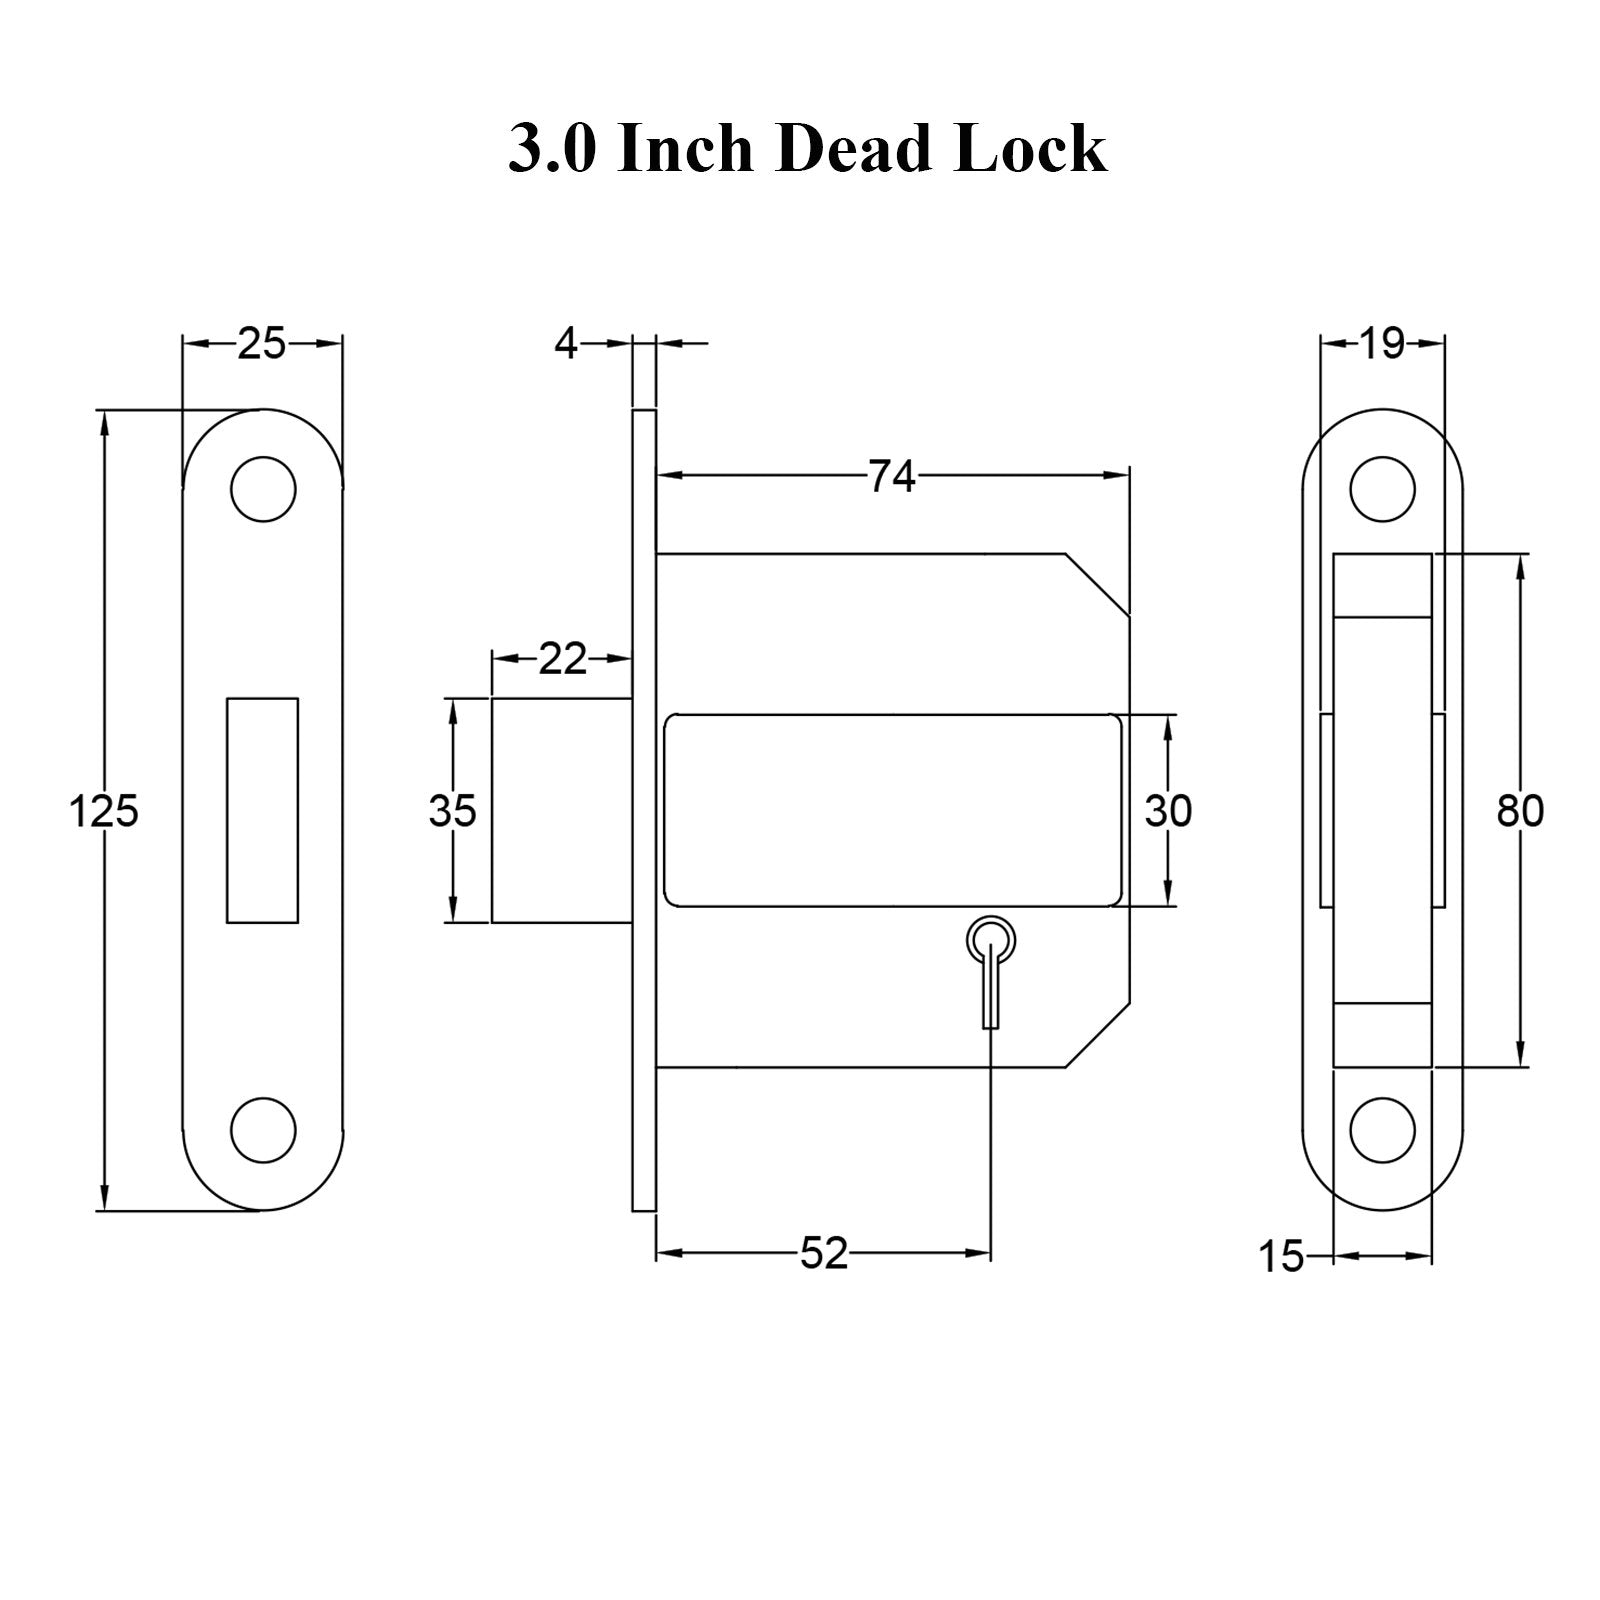 3 inch deadlock drawing with dimensions SHOW